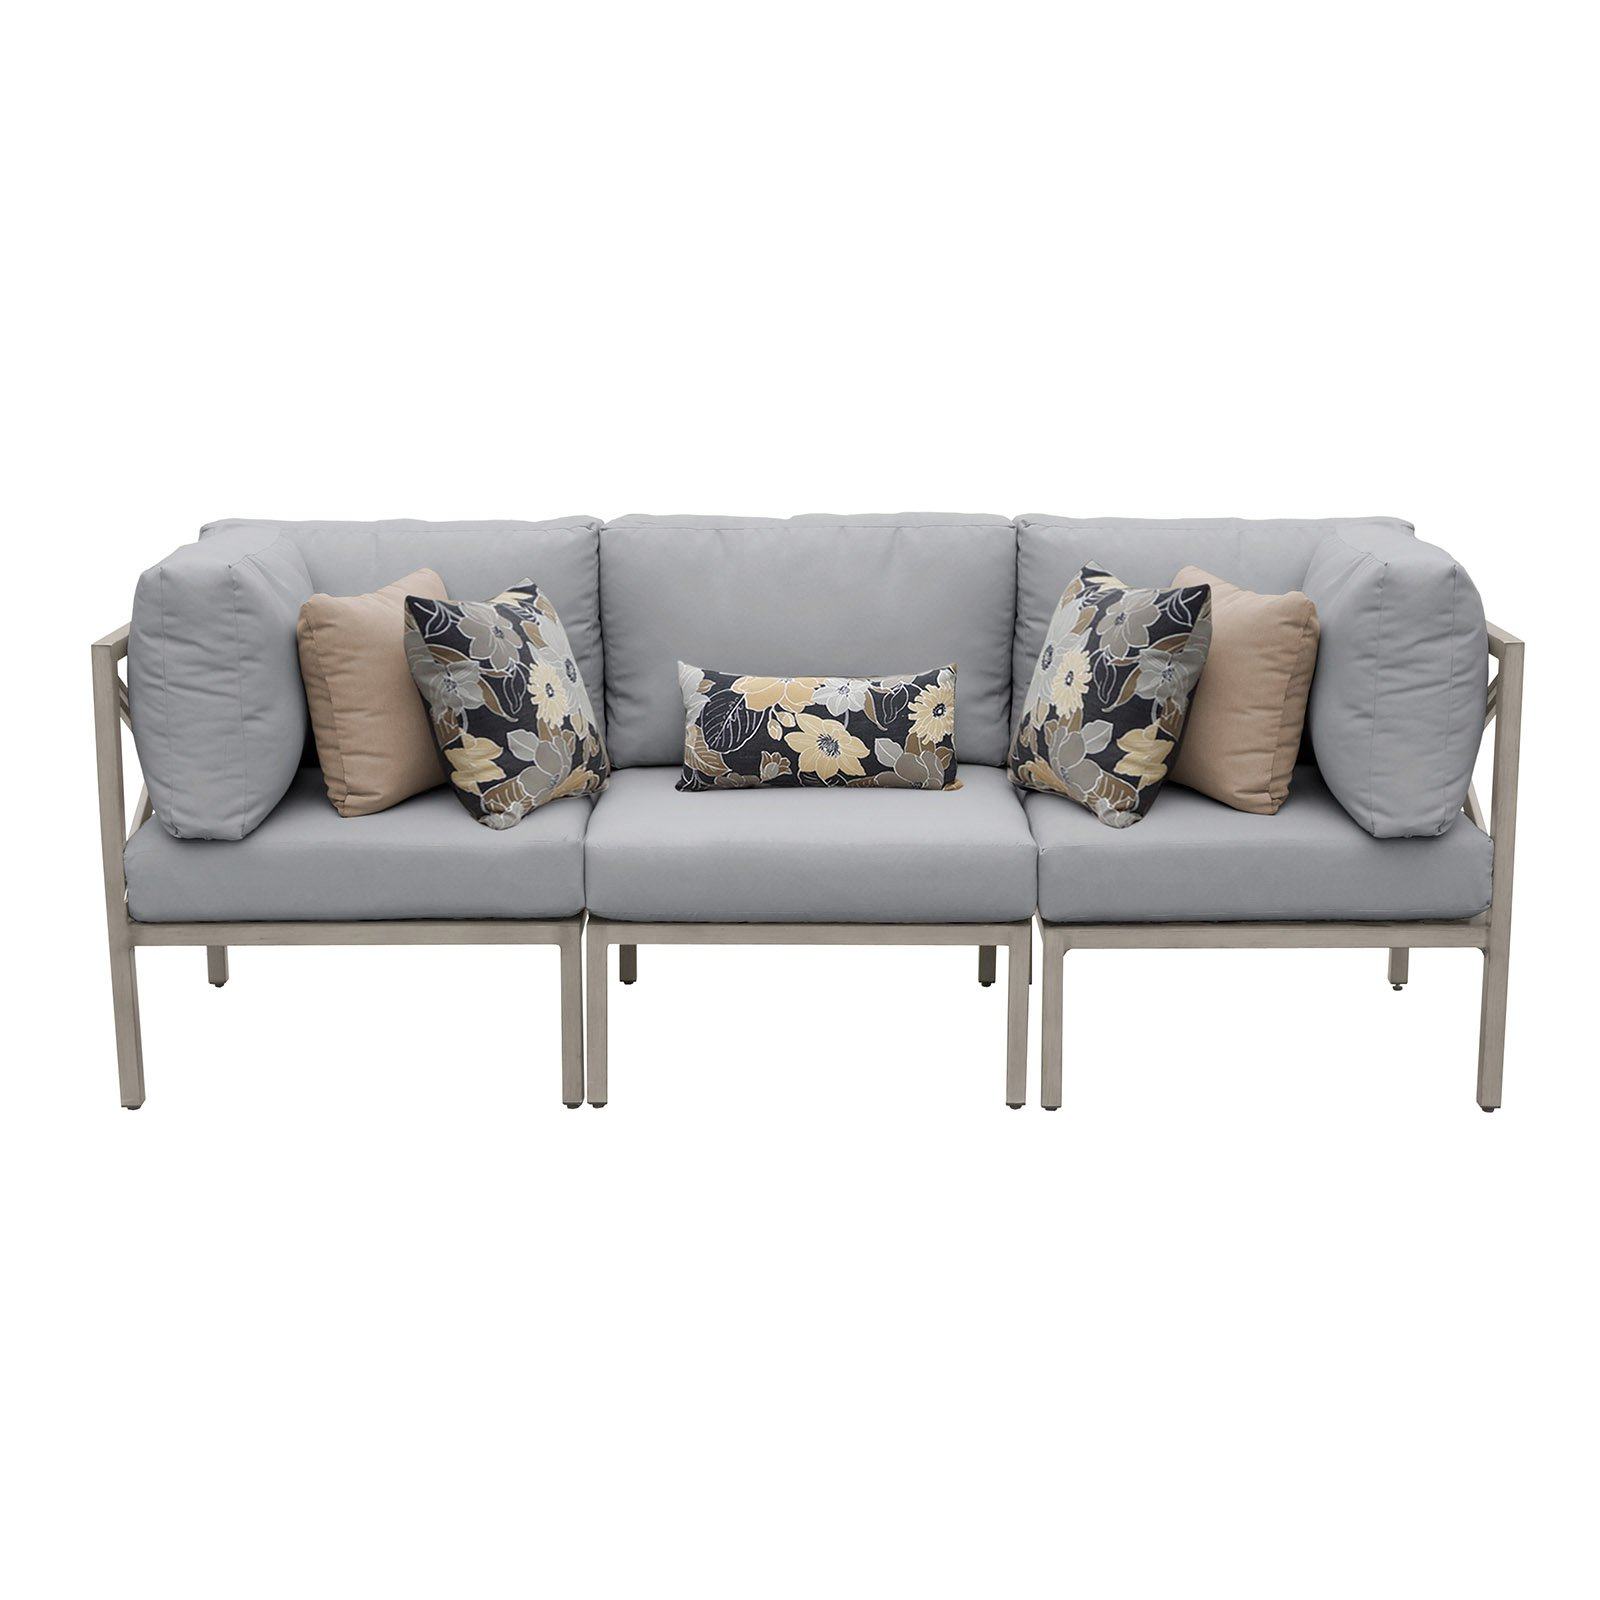 Most Up To Date Tk Classics Carlisle Aluminum 3 Piece Patio Sofa Intended For Carlisle Patio Sofas With Cushions (Gallery 22 of 25)